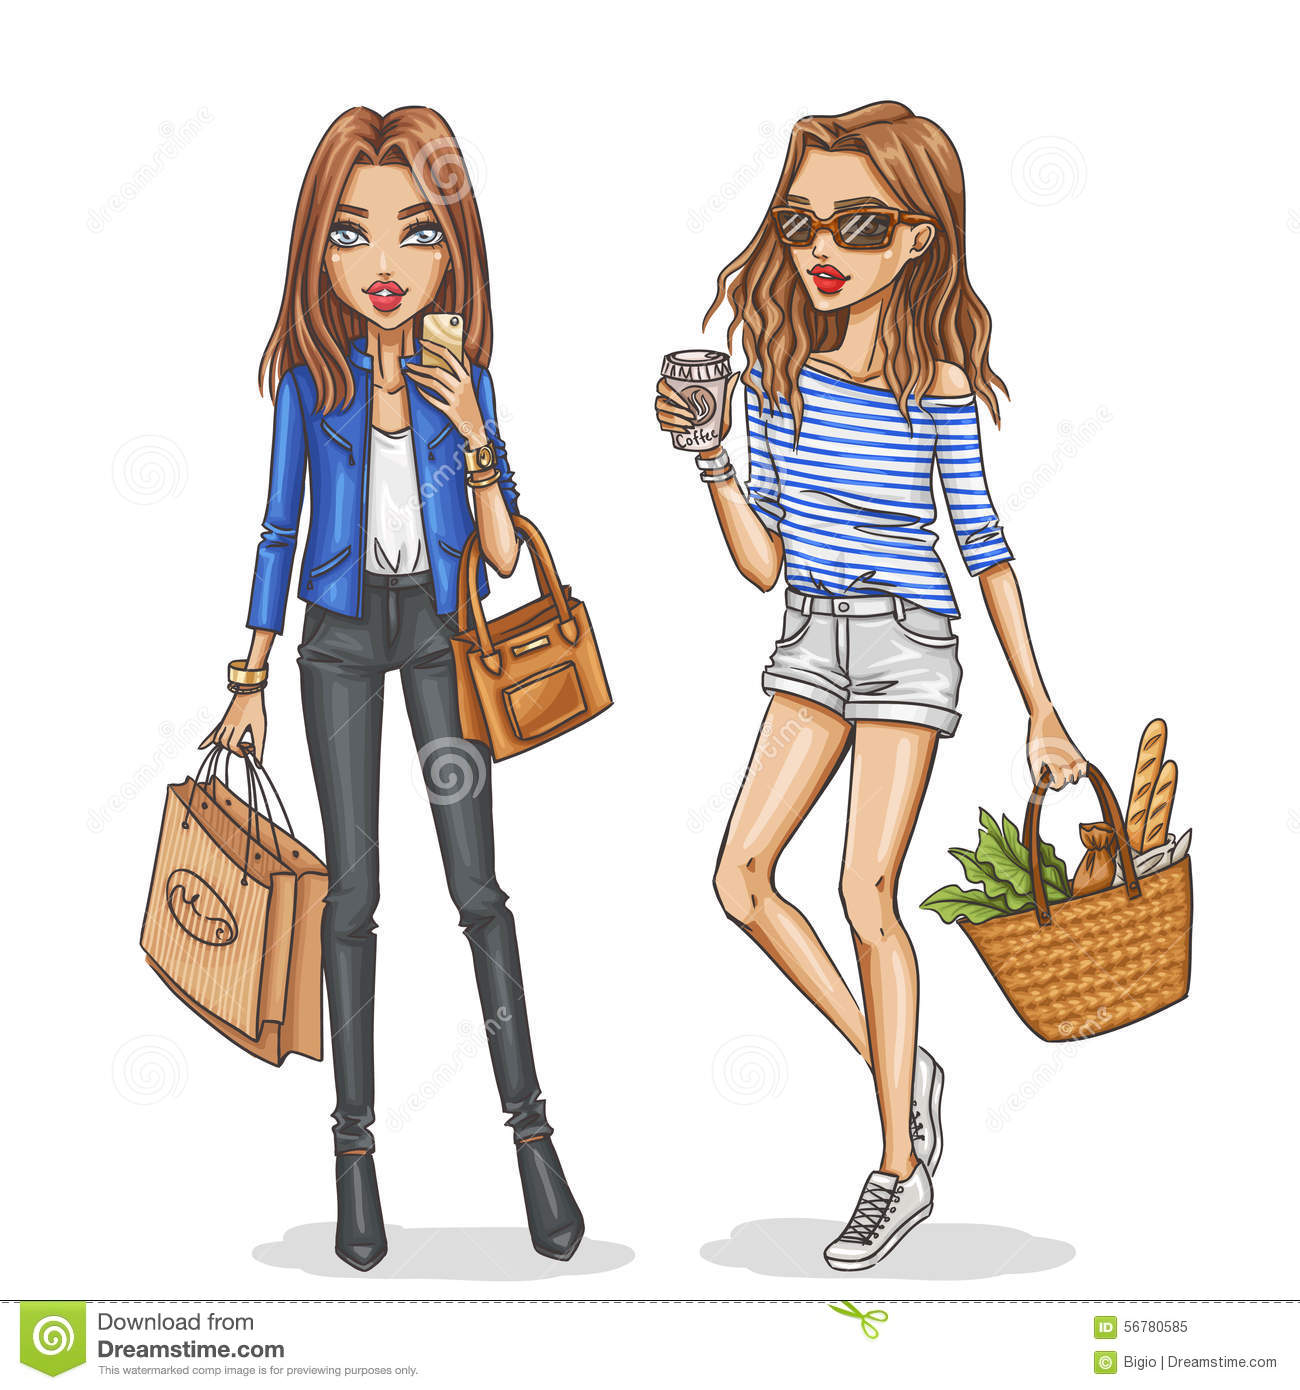 Cute Wallpapers For Bff For 5 Beautiful And Stylish Fashion Girls Stock Vector Image